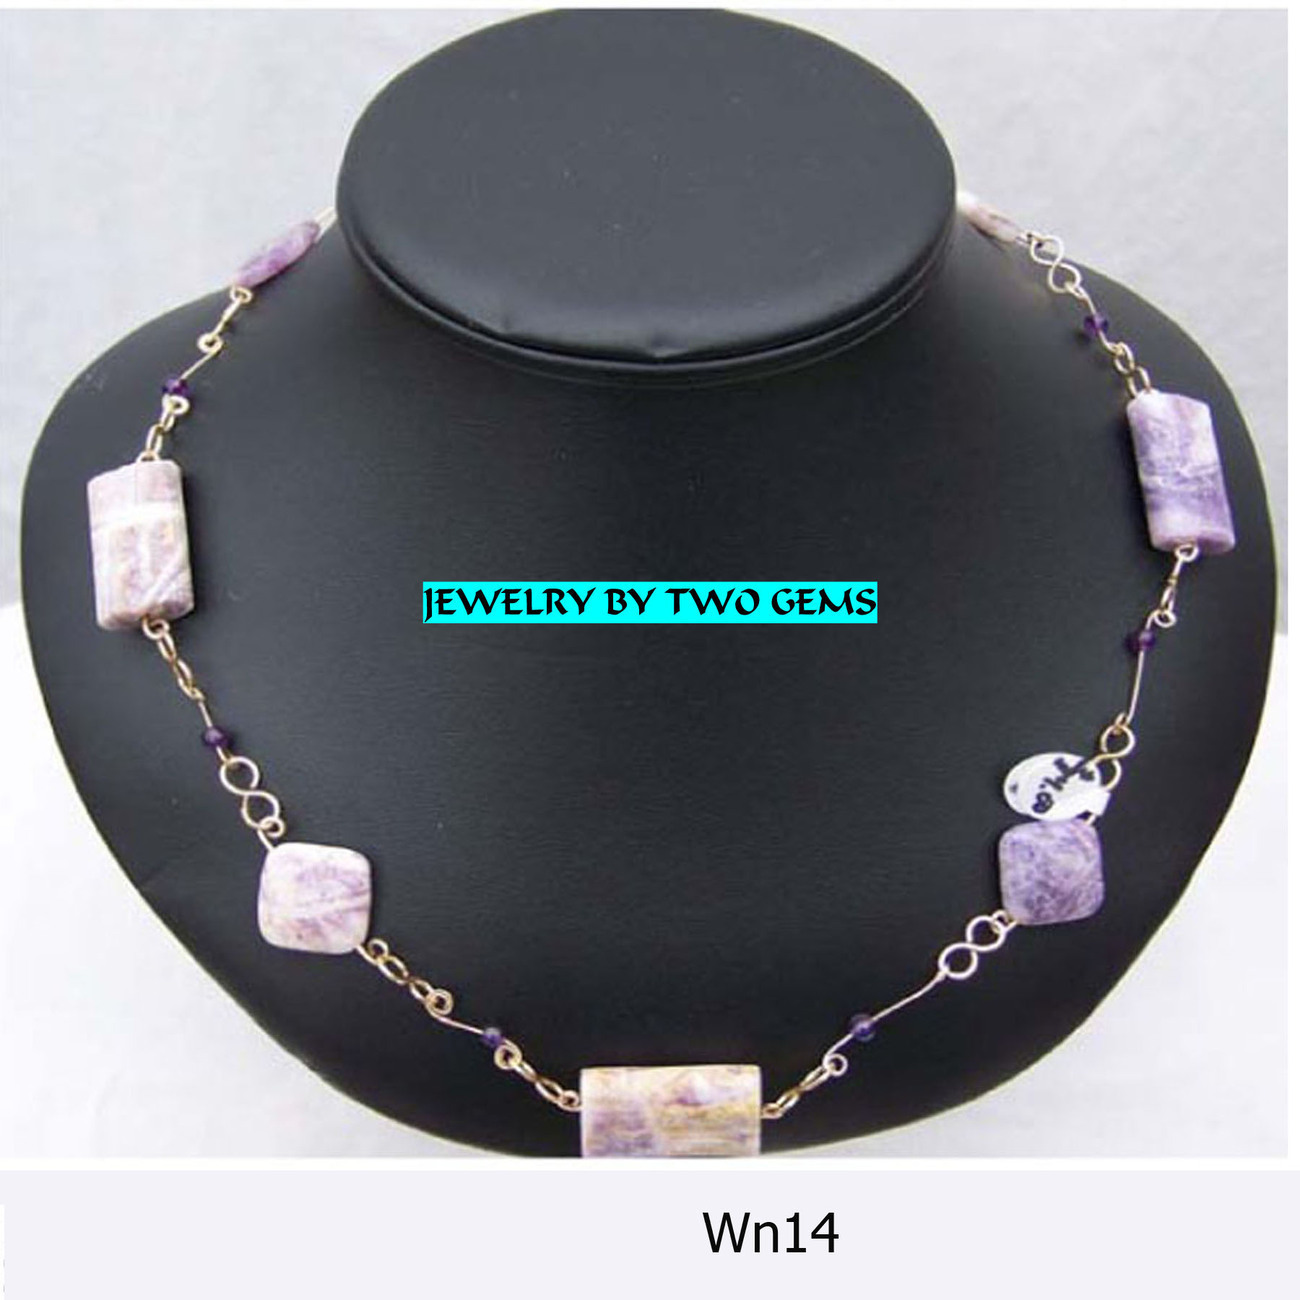 Jewelry By Two Gems (Wn14) 14Kt GF Charoite and Amethyst Nec